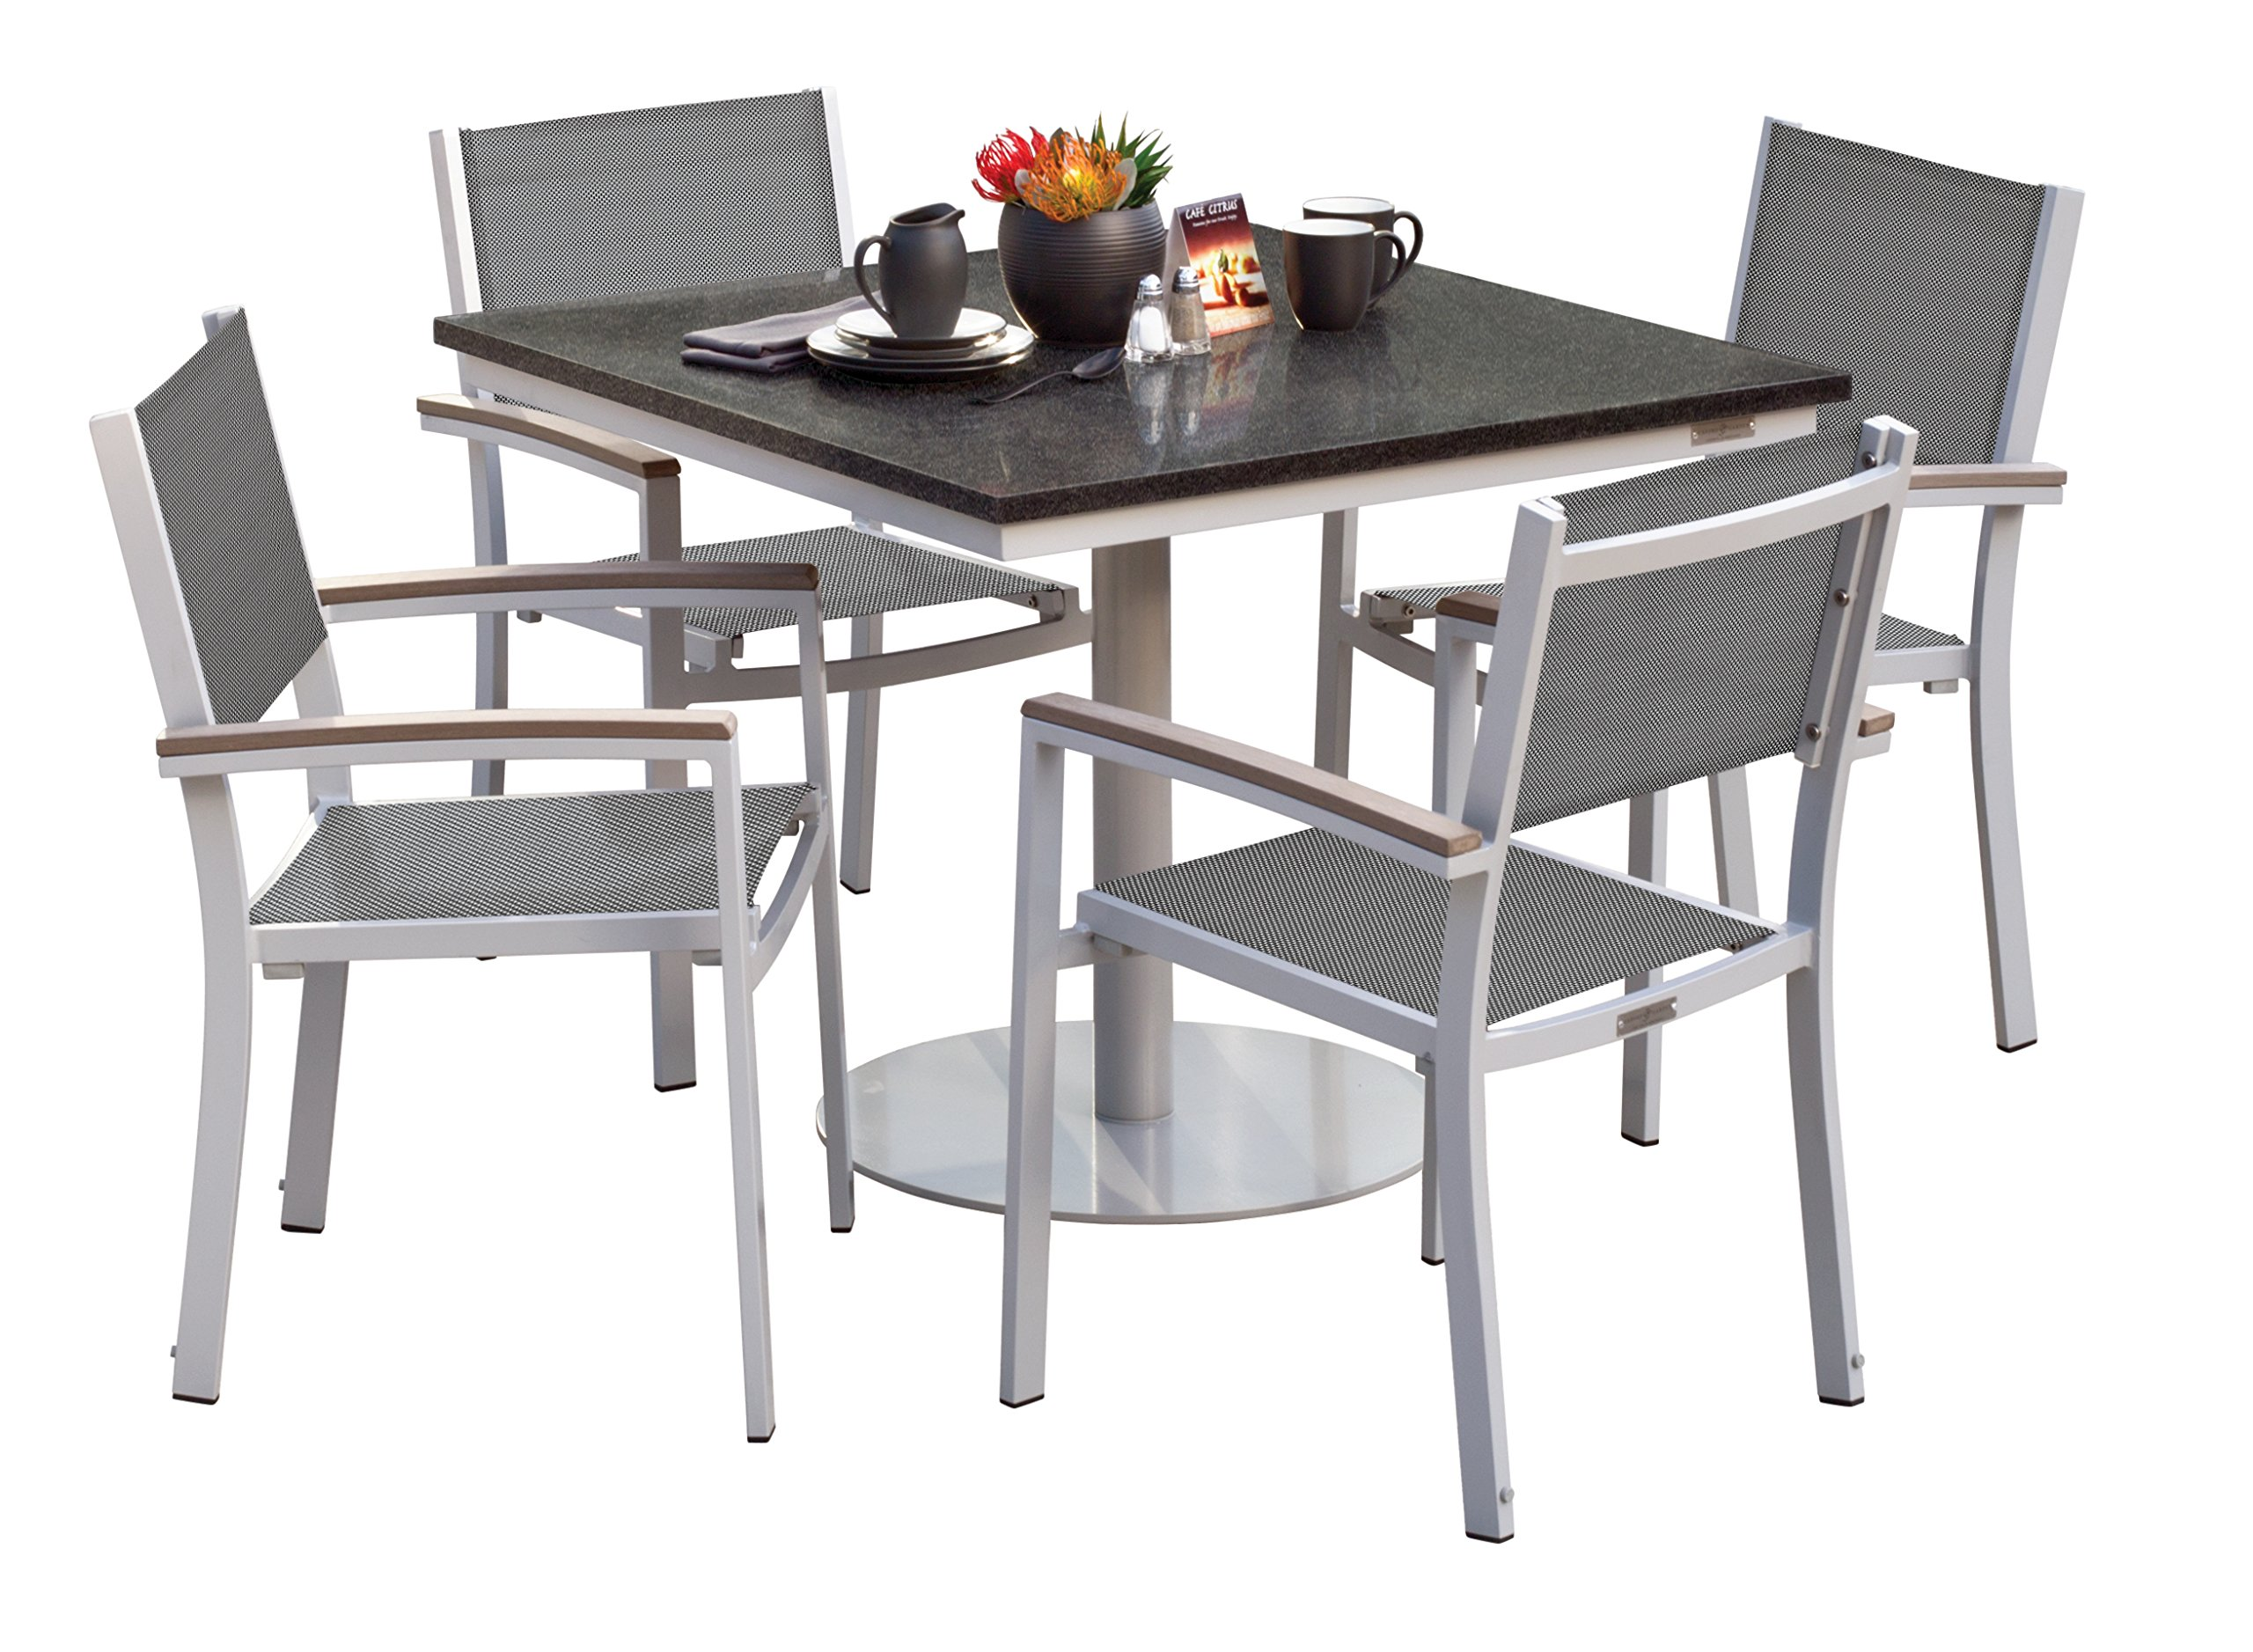 Oxford Garden 5360 Travira Light Weight Bistro Set with Square Table, Titanium